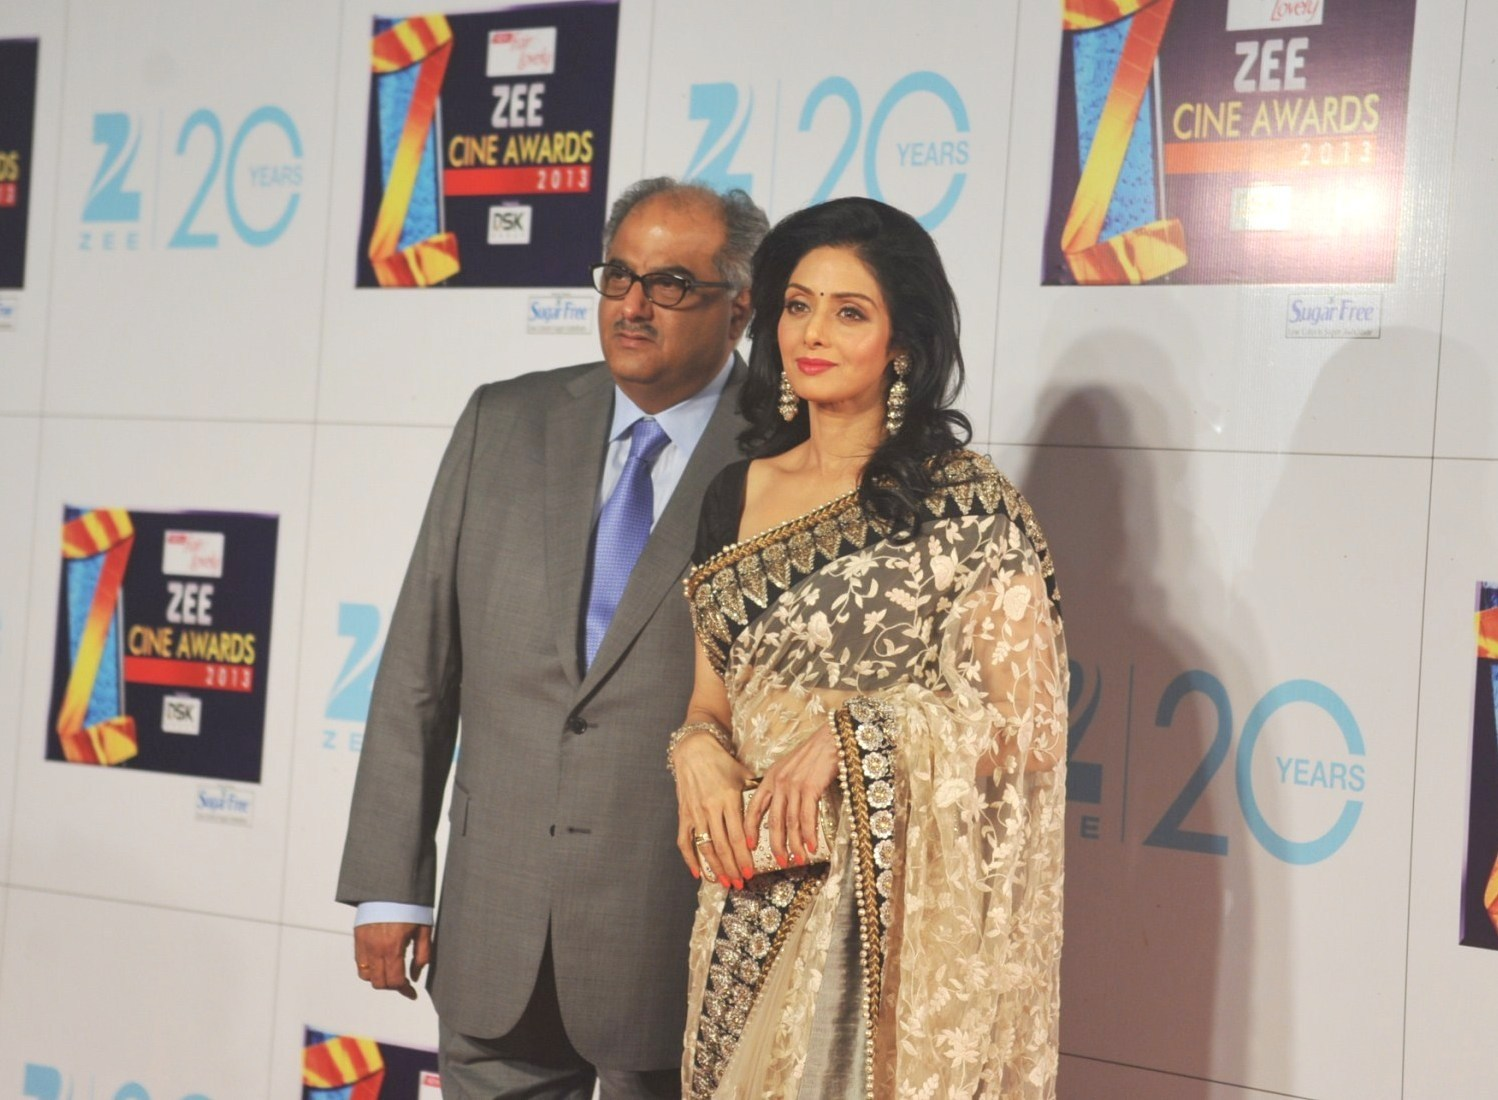 Vidya balan and sridevi at zee cine awards 2013.